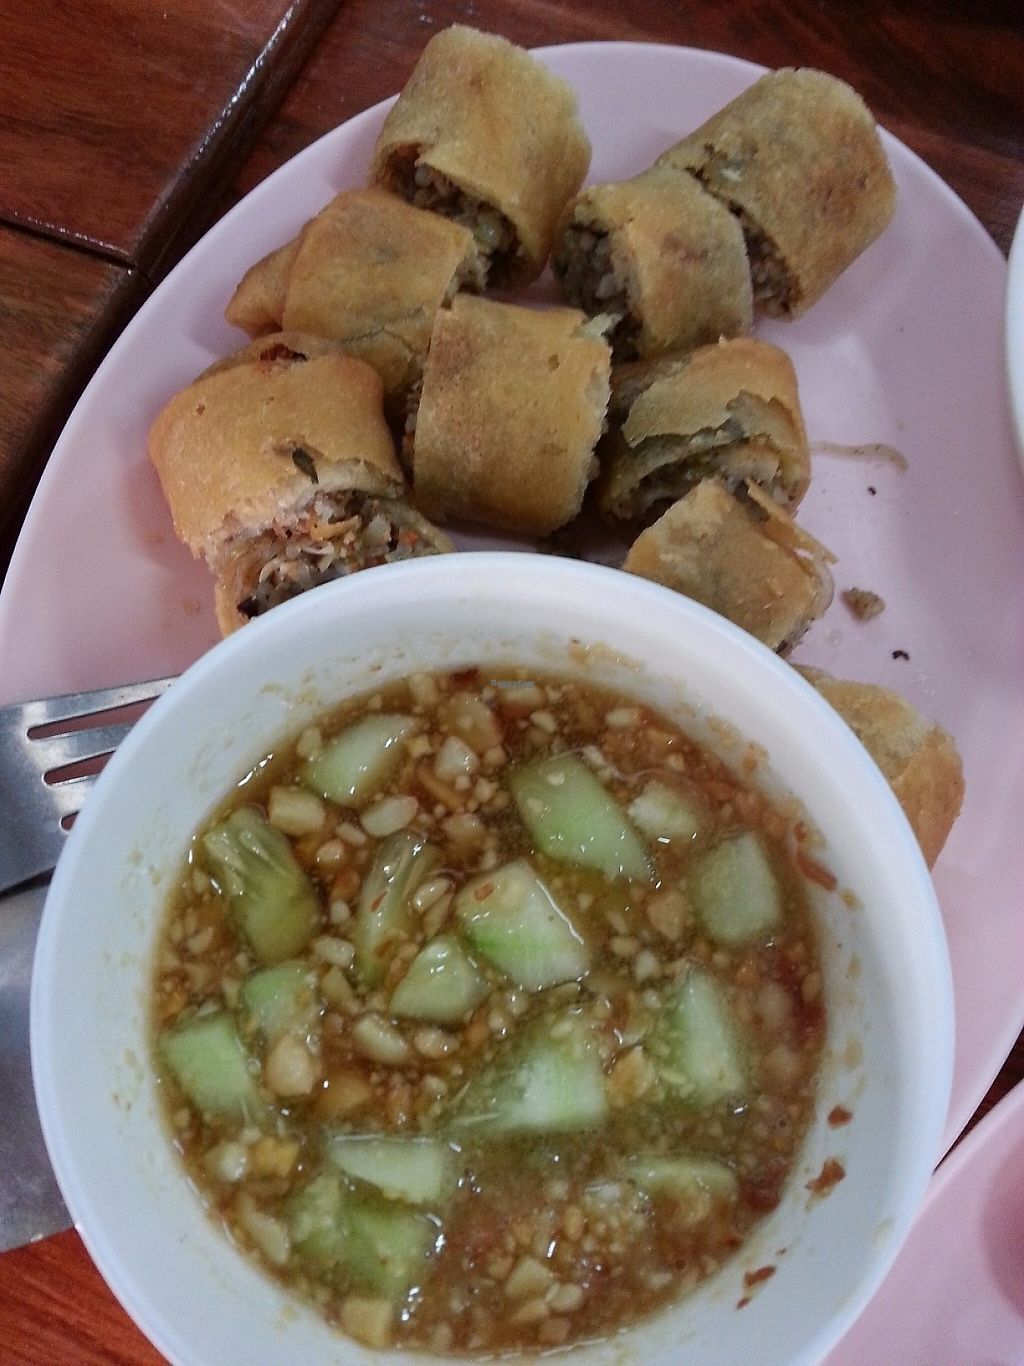 """Photo of Pang Vegetarian  by <a href=""""/members/profile/KimmyLuangsaengtham"""">KimmyLuangsaengtham</a> <br/>spring rolls <br/> January 5, 2017  - <a href='/contact/abuse/image/85050/208259'>Report</a>"""